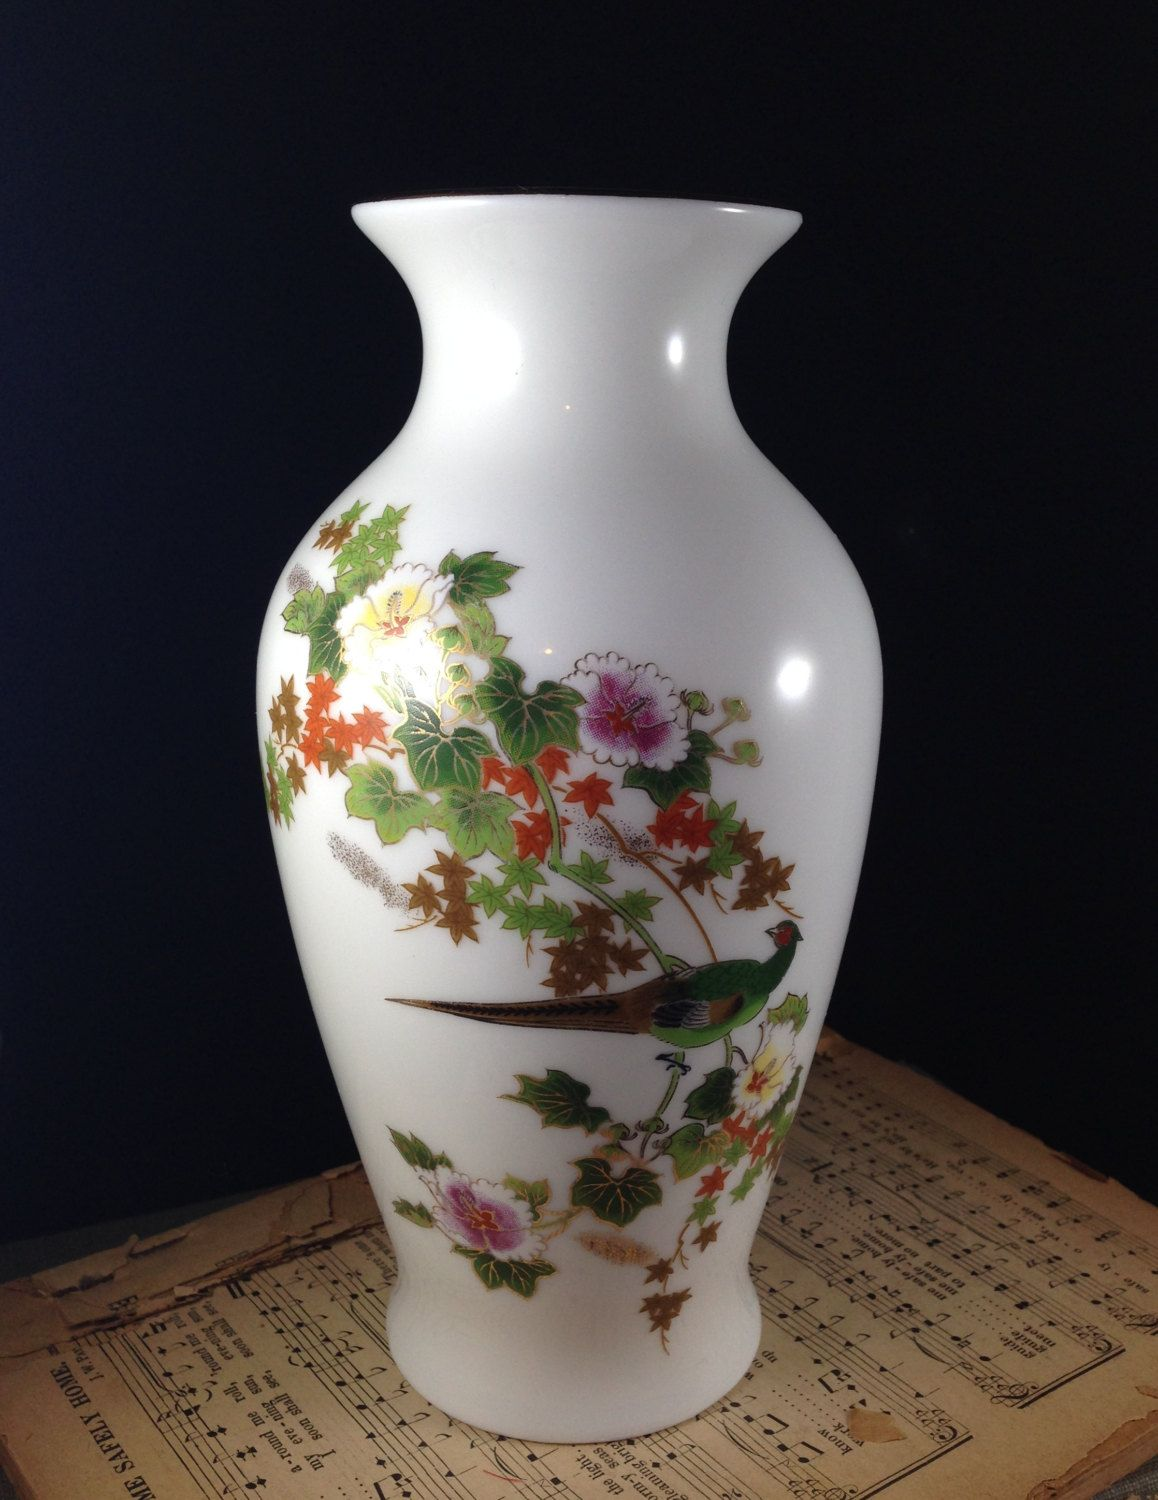 Vintage oriental vase with pheasant and flowers 24k gold trim made vintage oriental vase with pheasant and flowers 24k gold trim made in japan asian ceramic flower reviewsmspy